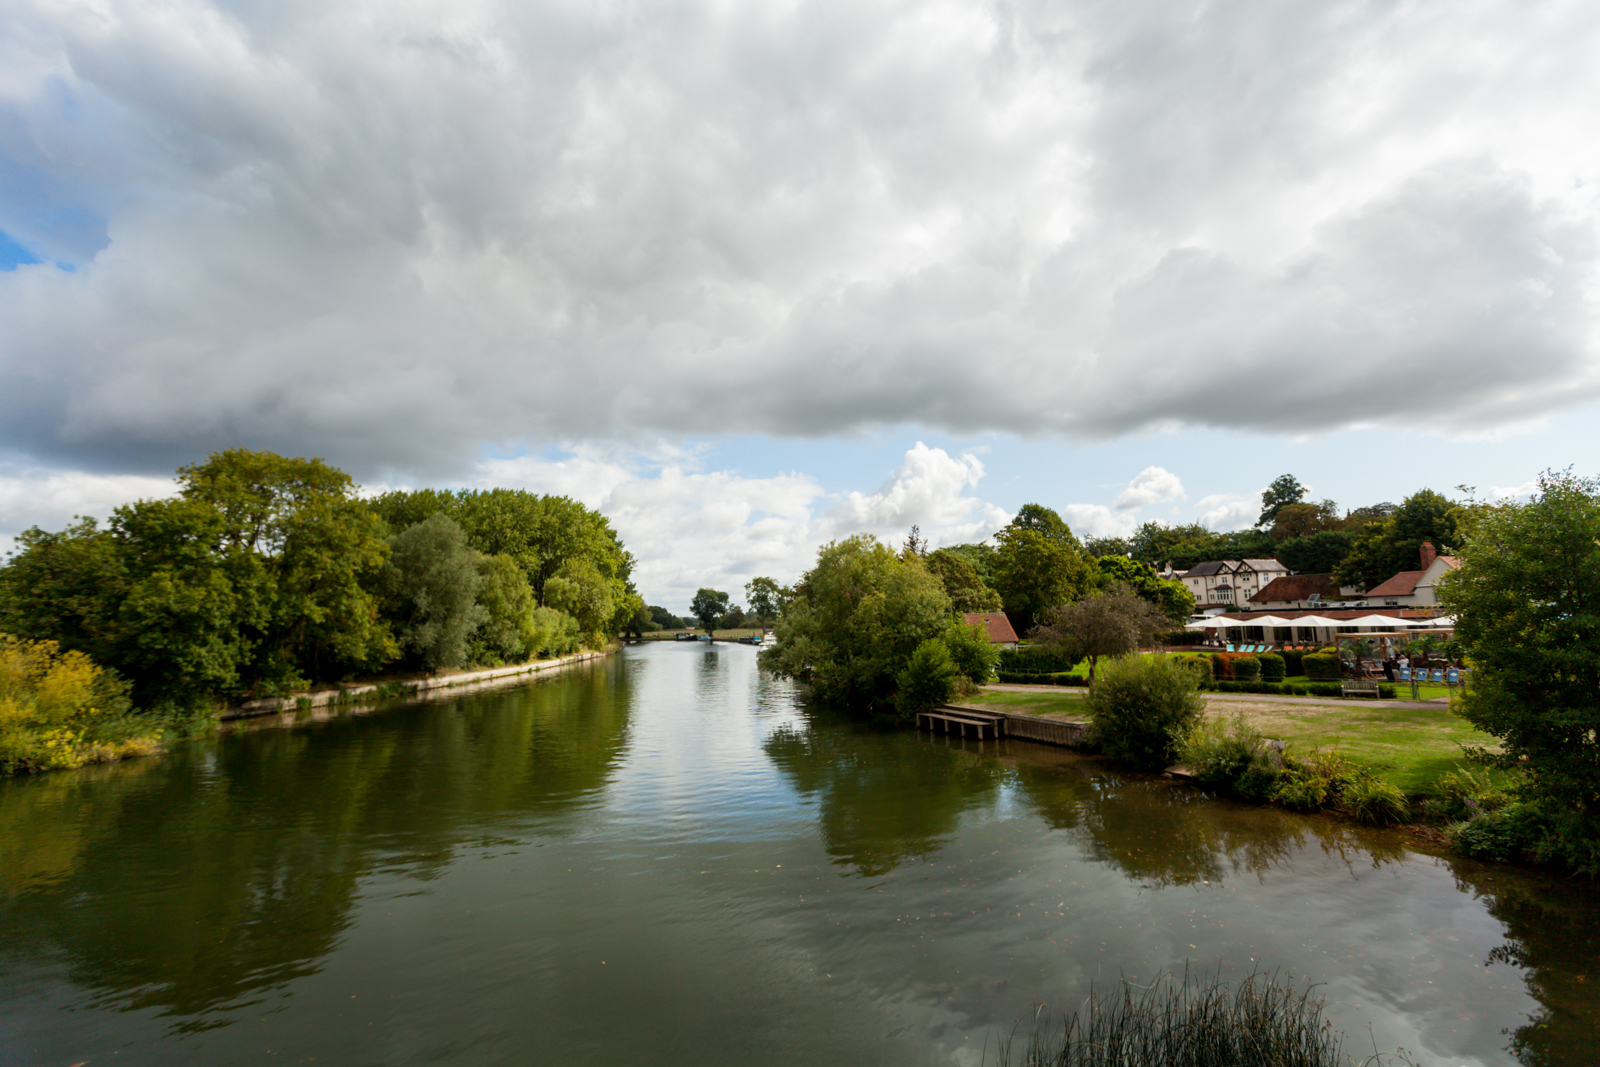 Weddings at The Great House at Sonning